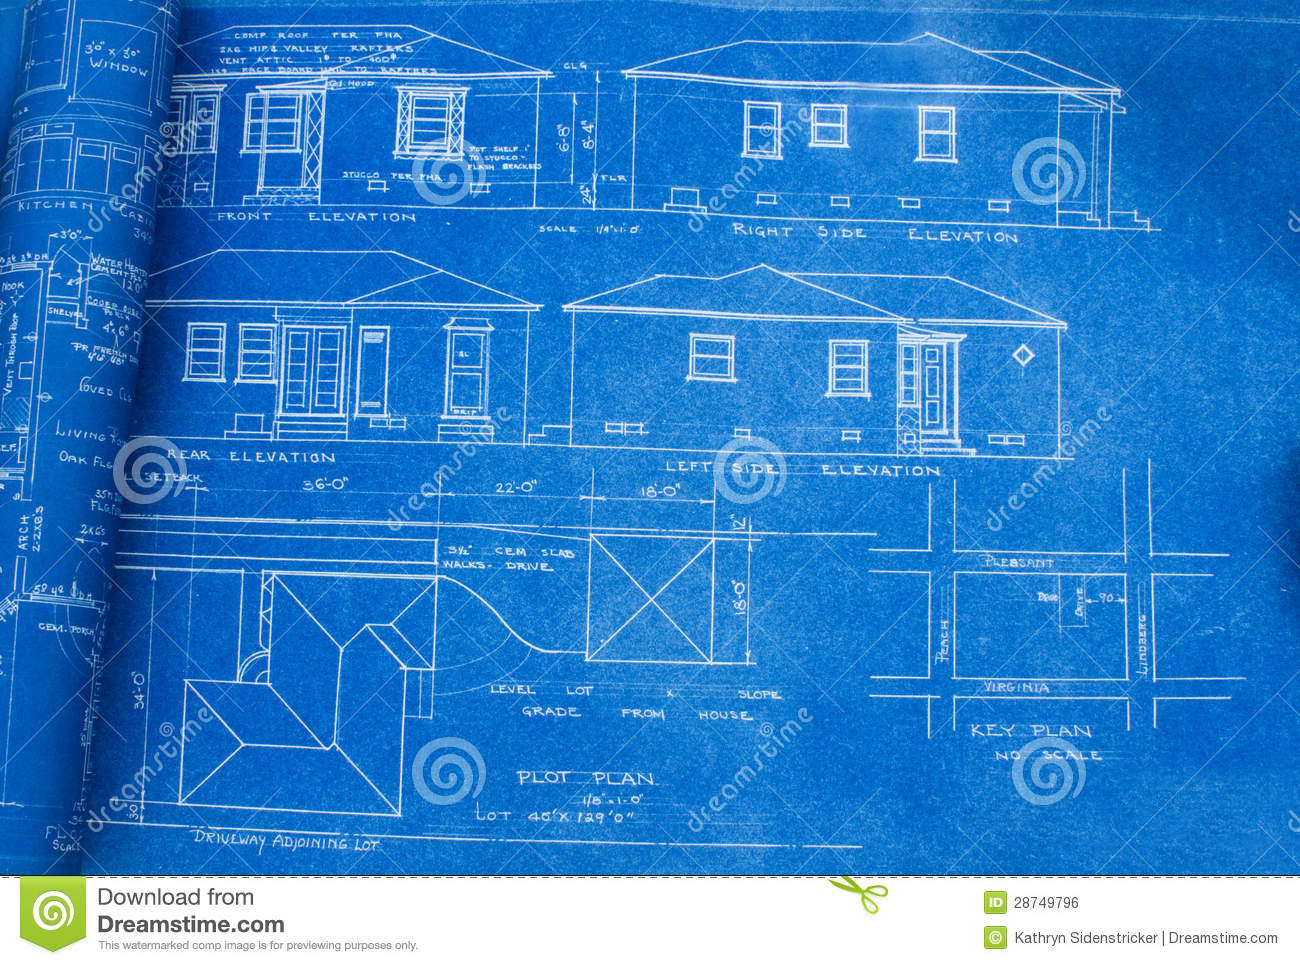 Royalty Free Stock Image Mid Century Home Blueprint Image28749796 furthermore Watch moreover A32df158f8912998 Beach House On Stilts Plans Beach House On Stilts Plans as well 30678 besides 1000 Square Feet 3 Bedrooms 1 5 Bathroom Modern House Plan 1 Garage 37008. on modern ranch style house floor plans